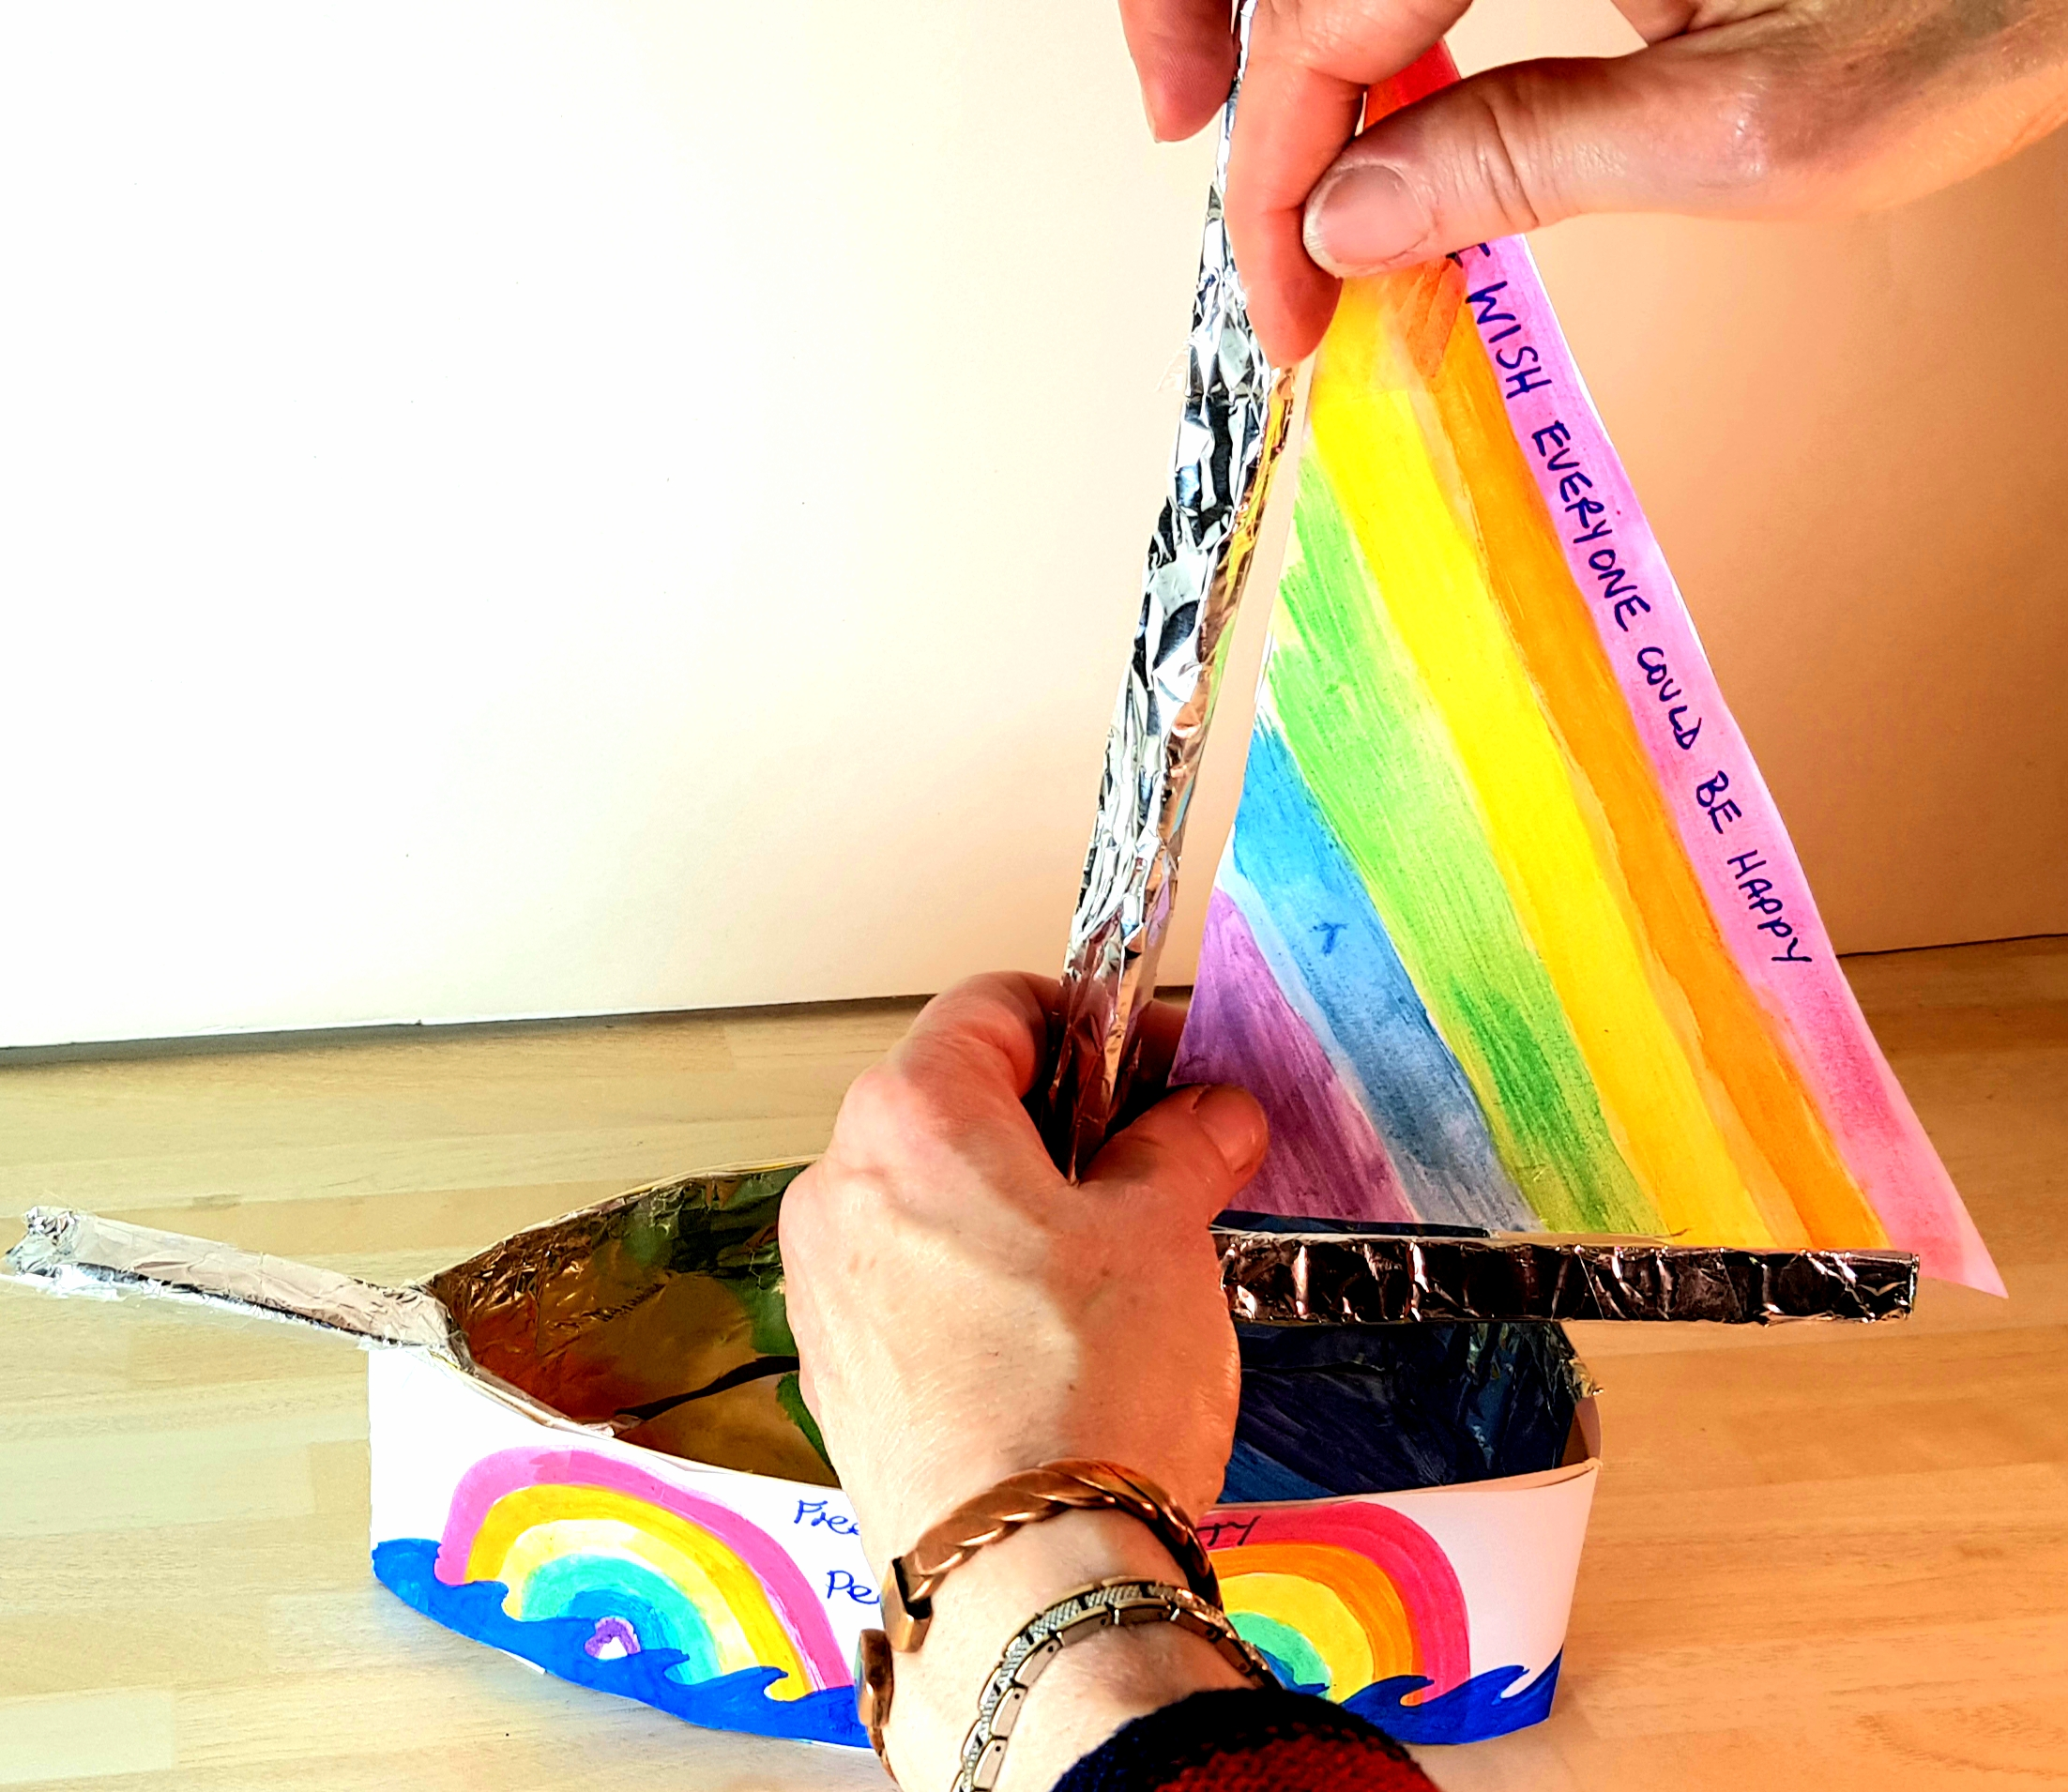 A ship has been made out of card and decorated with rainbow colours. Someone is adding a sail with rainbow stripes to the mast.